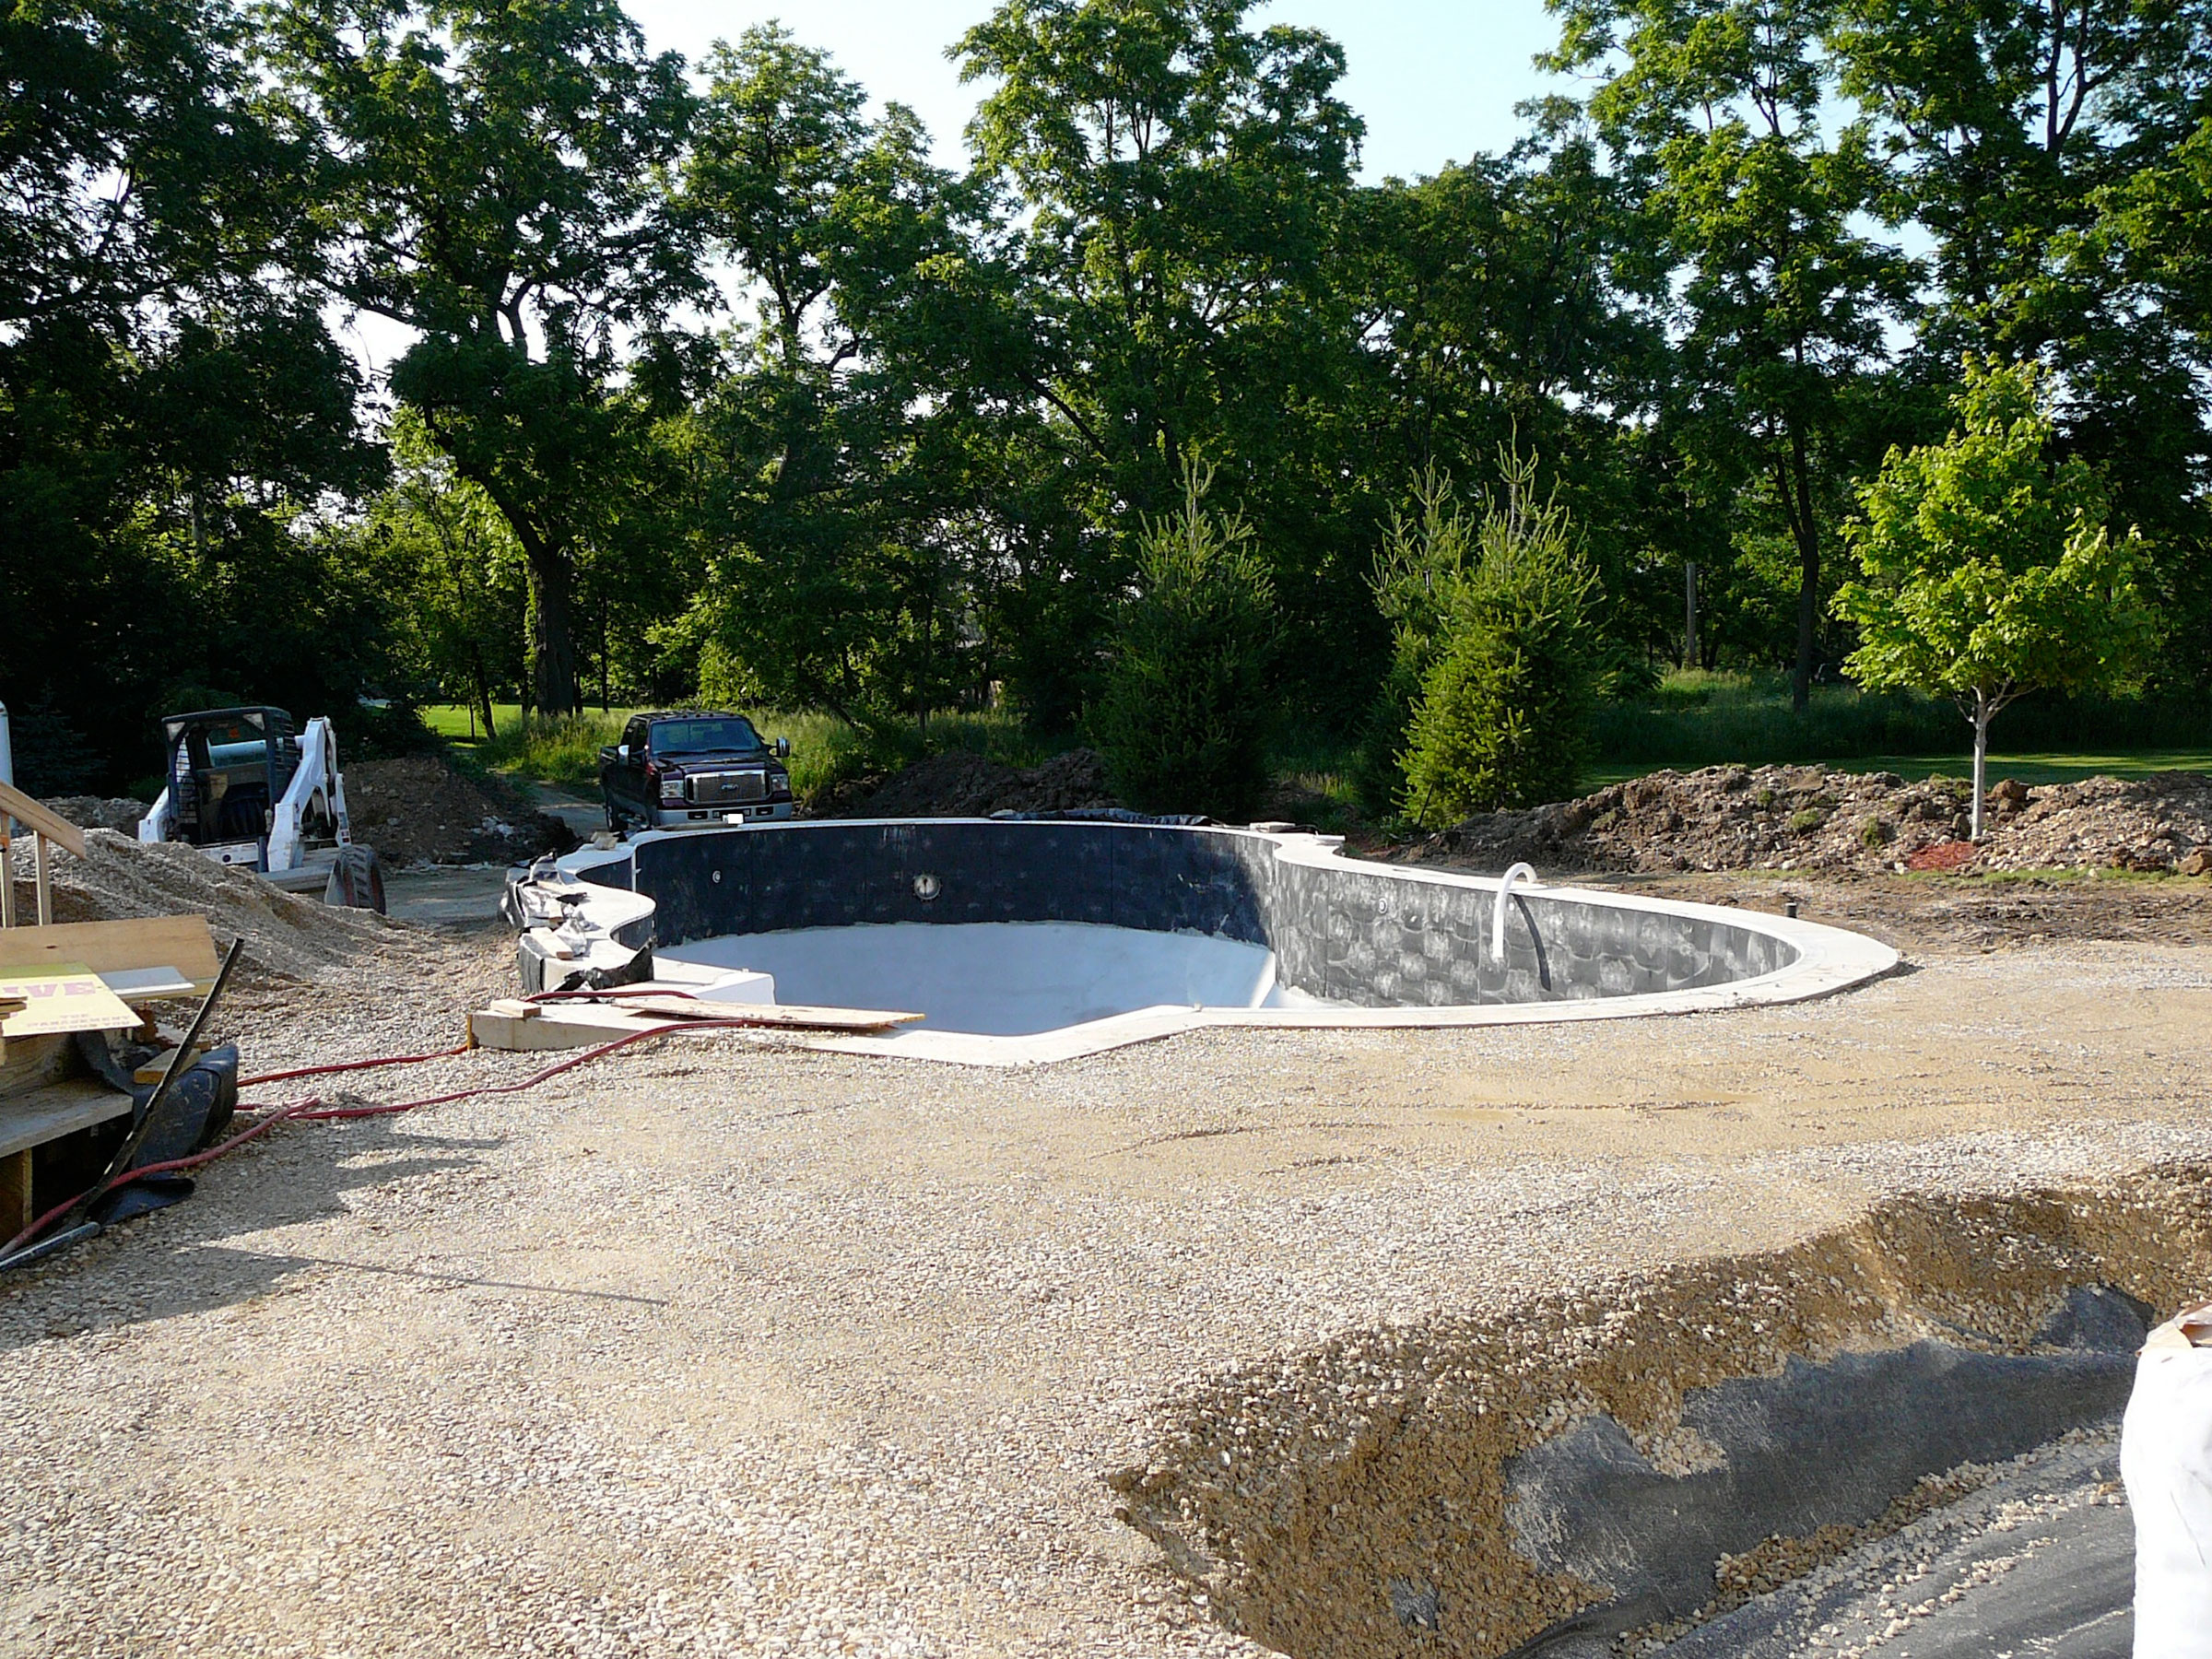 Wider view of the pool area under construction, with beginning of hot tub excavation